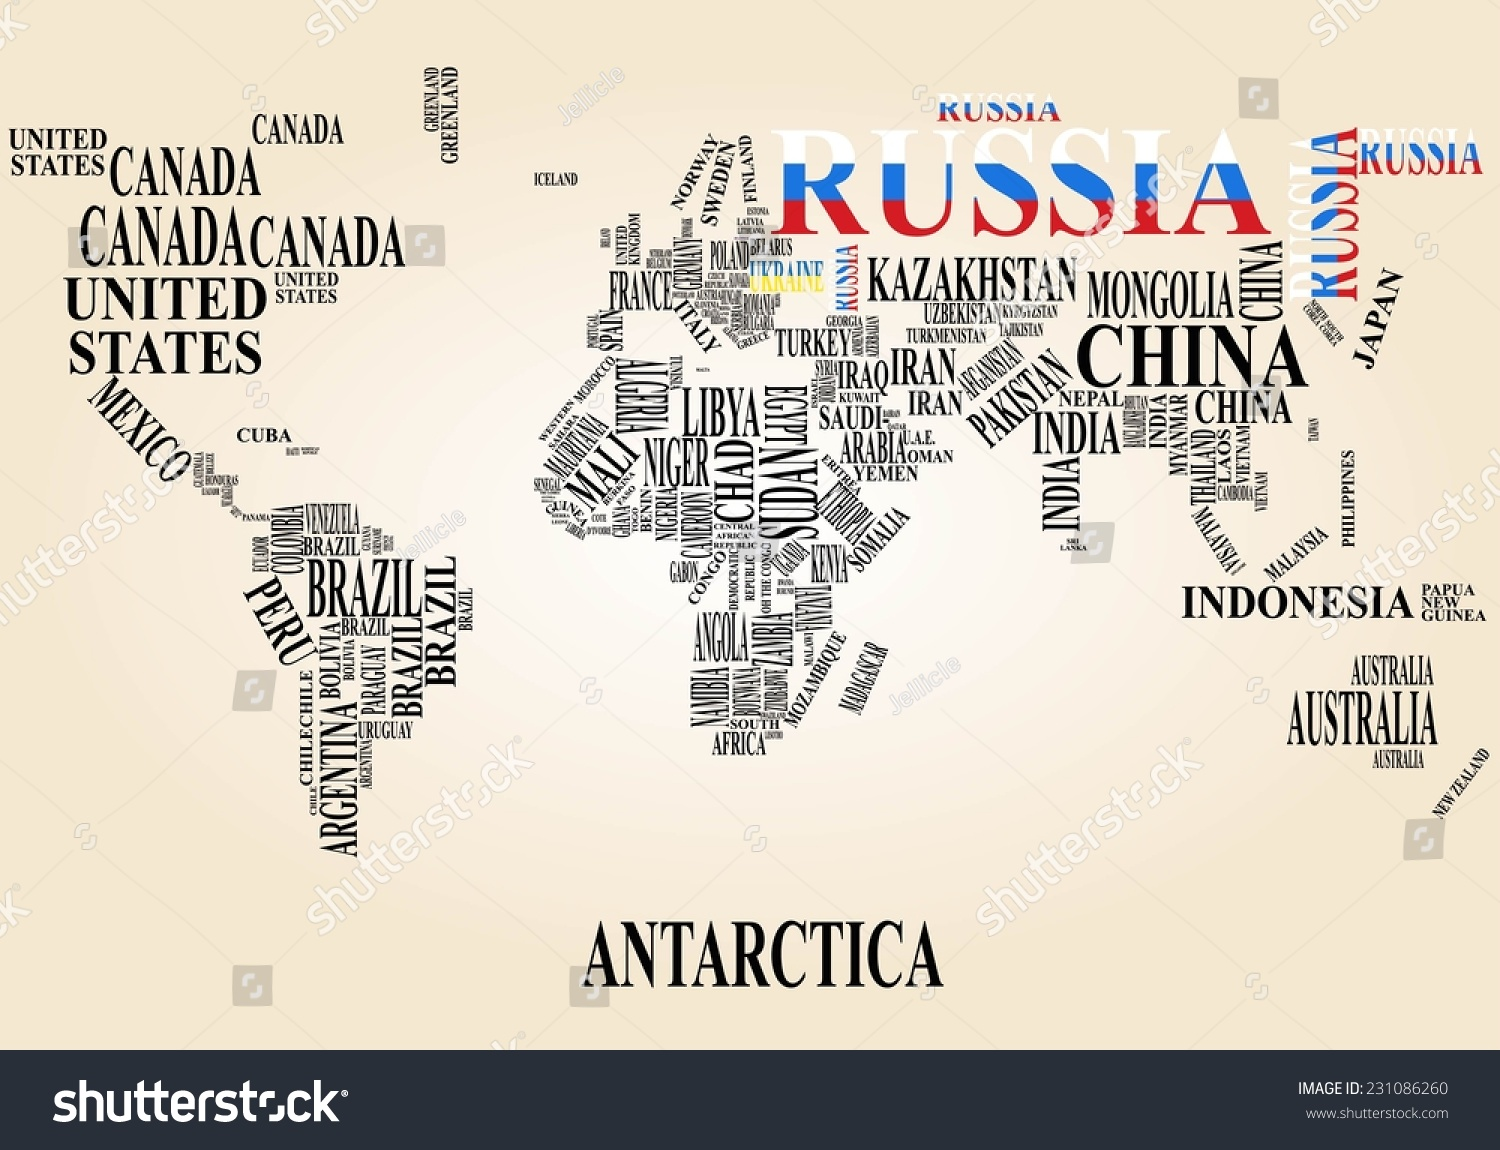 Word cloud world map russia ukraine stock vector 231086260 word cloud world map with russia and ukraine gumiabroncs Images